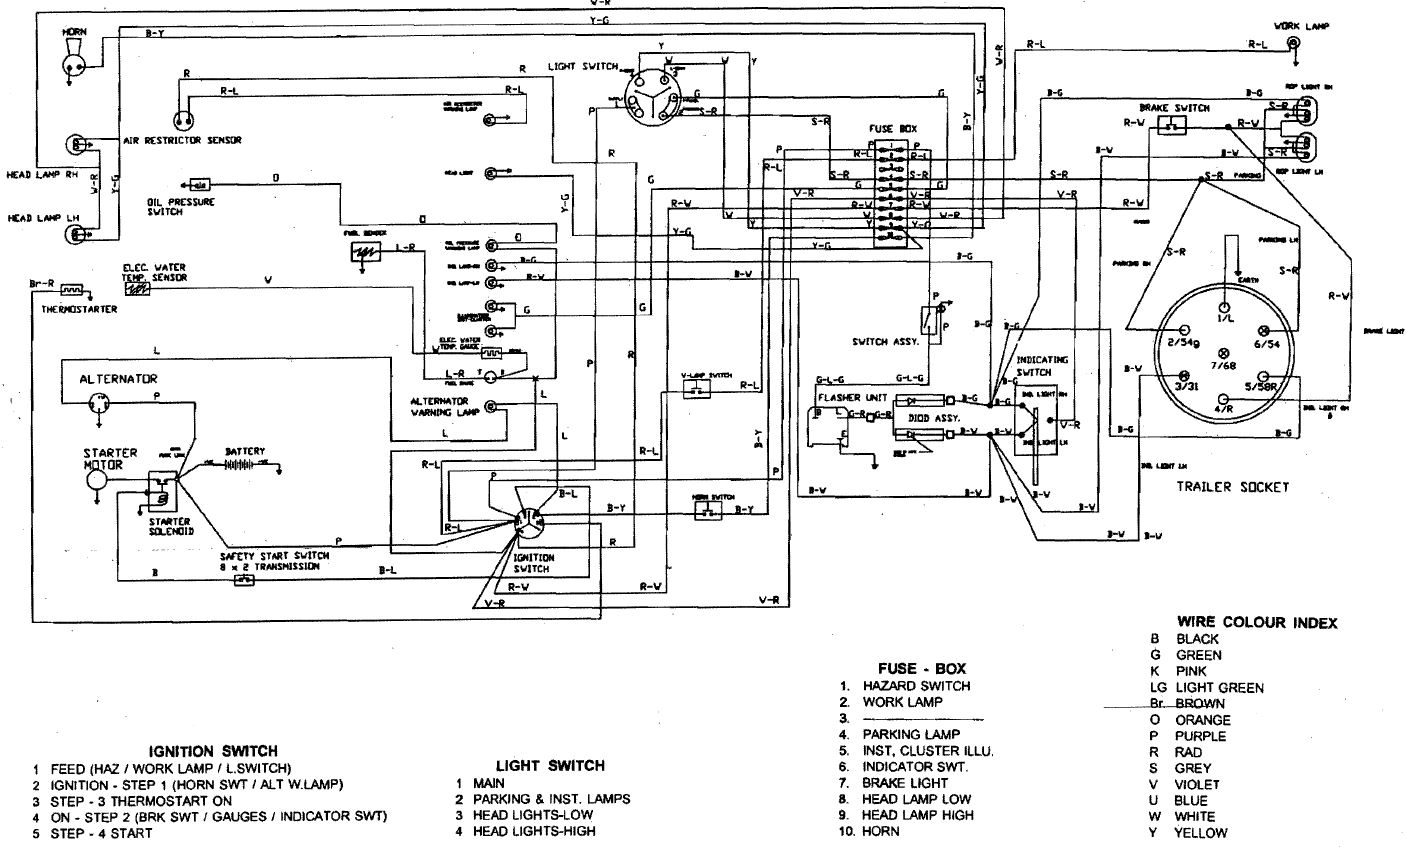 Wire Schematics Wiring Library Diagram Additionally Car Horn On Ignition Switch In Addition